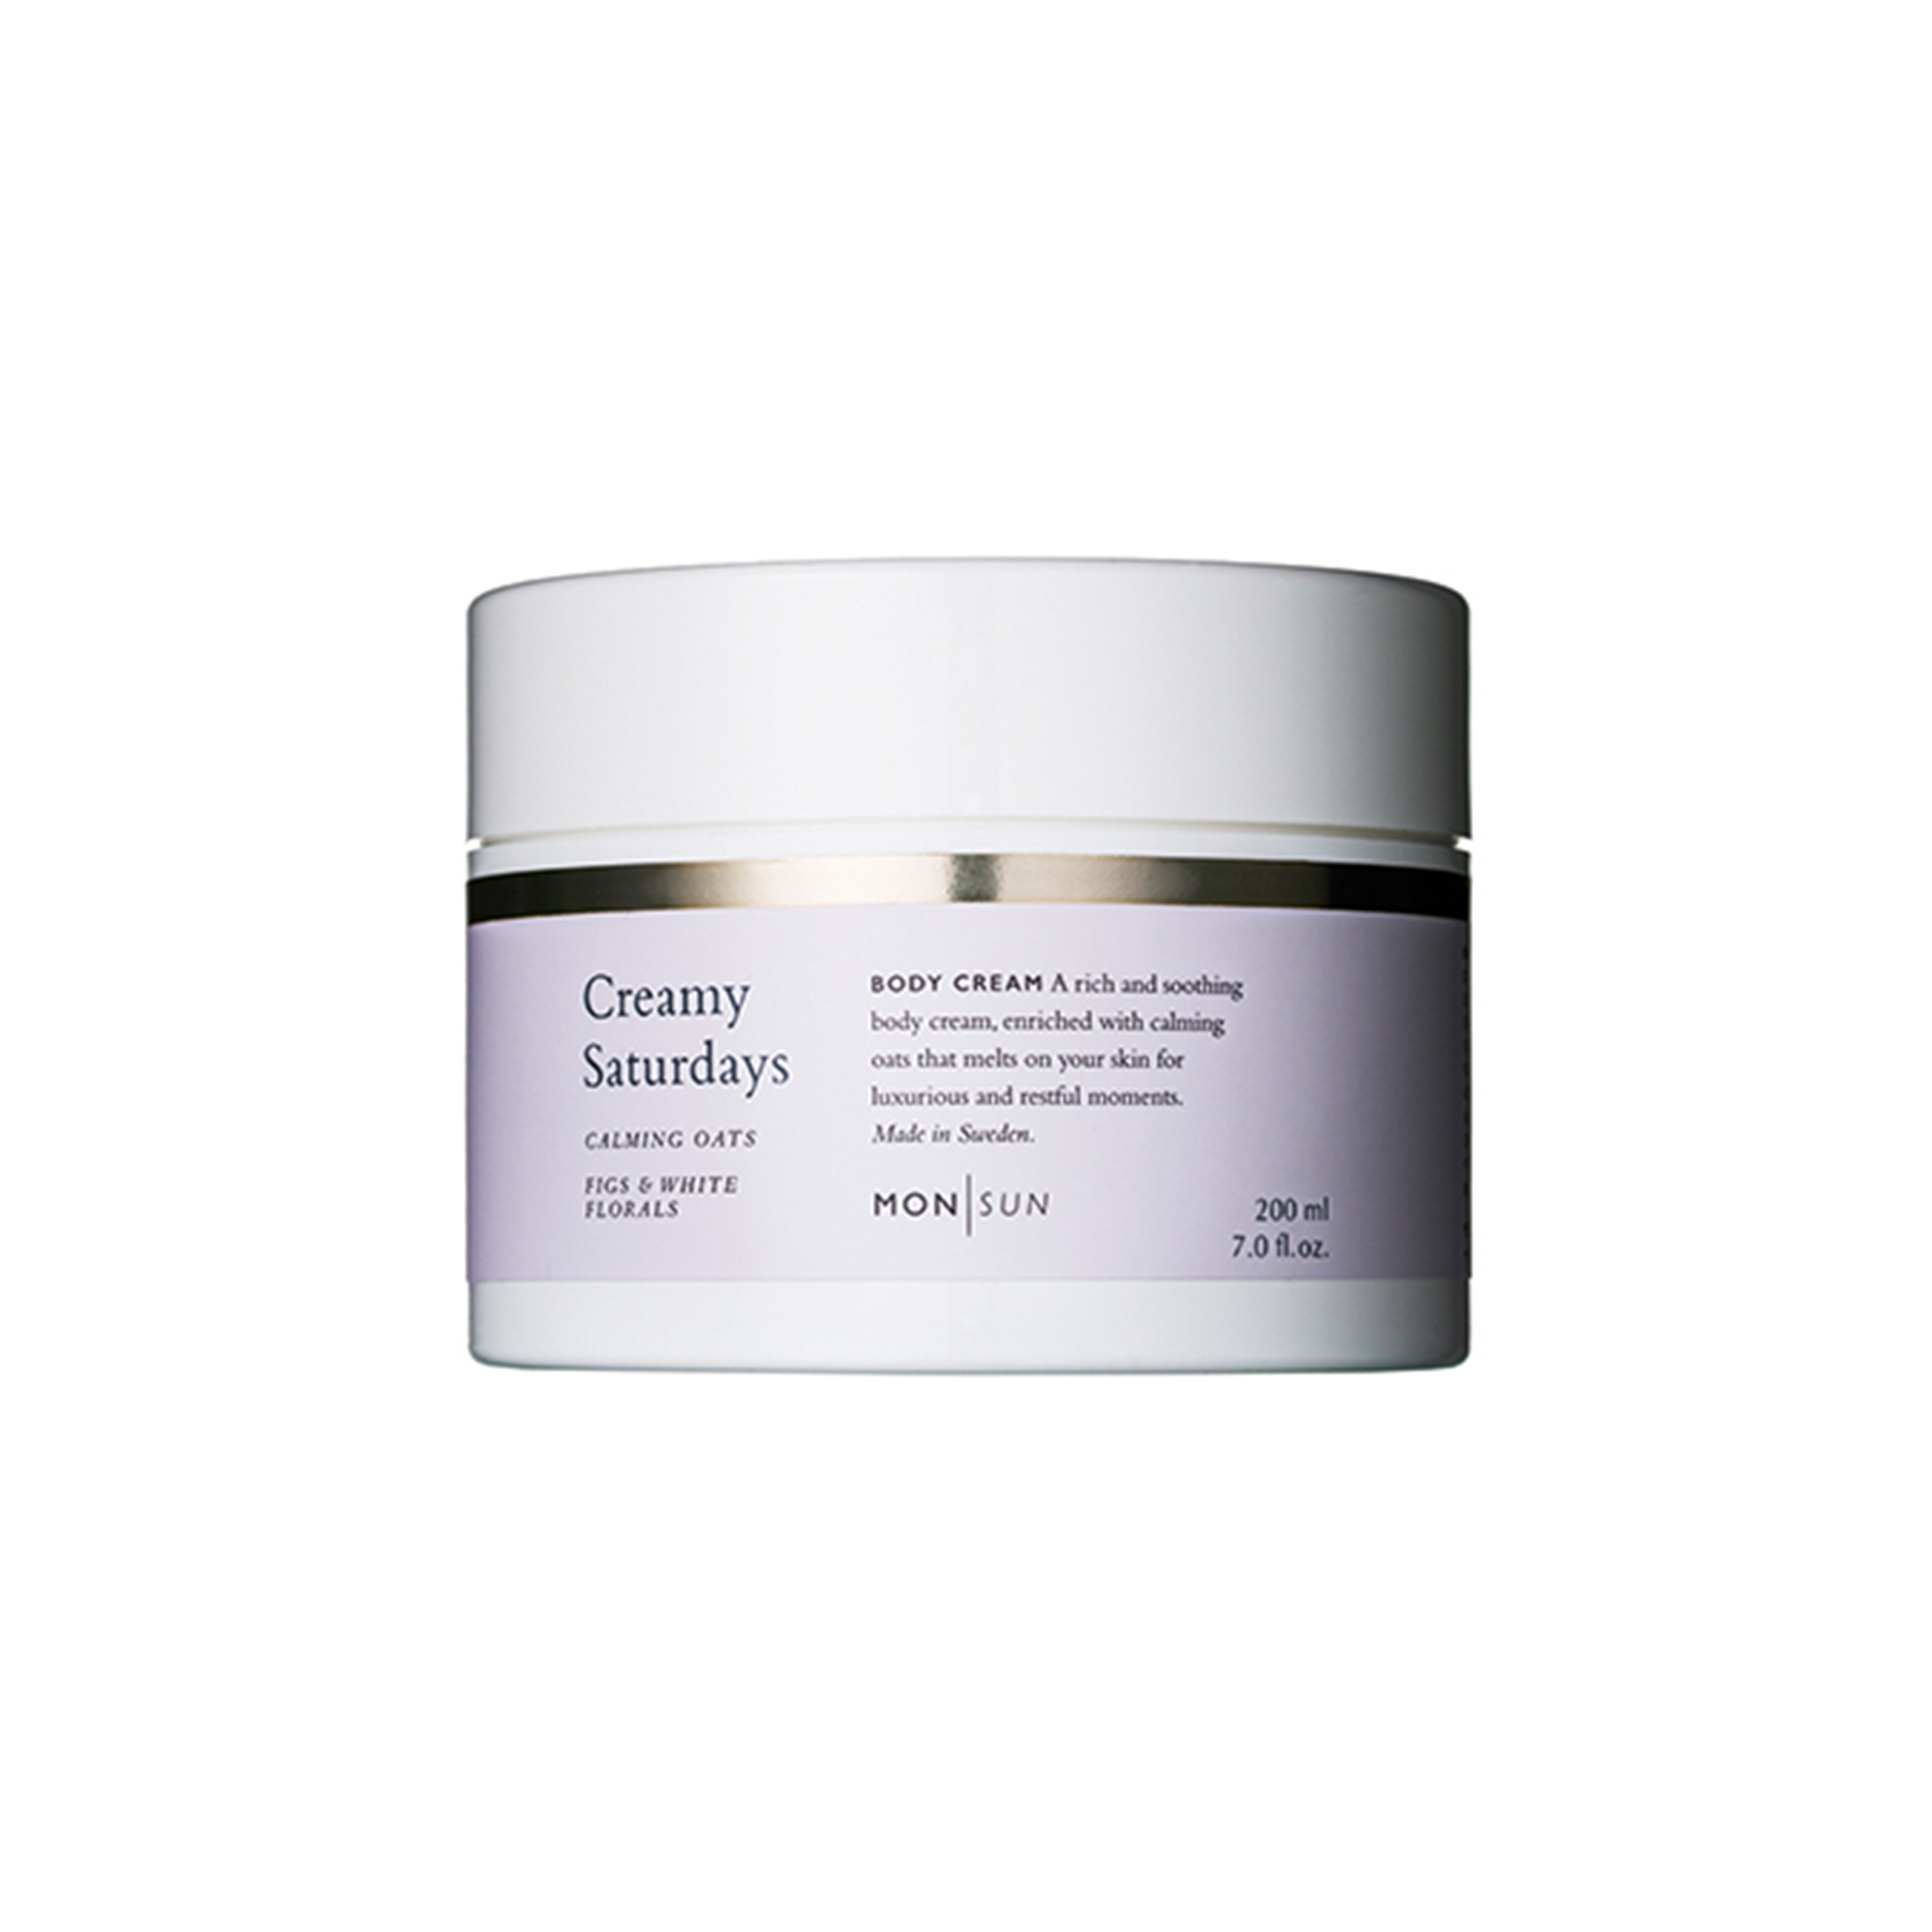 Creamy Saturdays Calming Oats Body Cream 200 ml